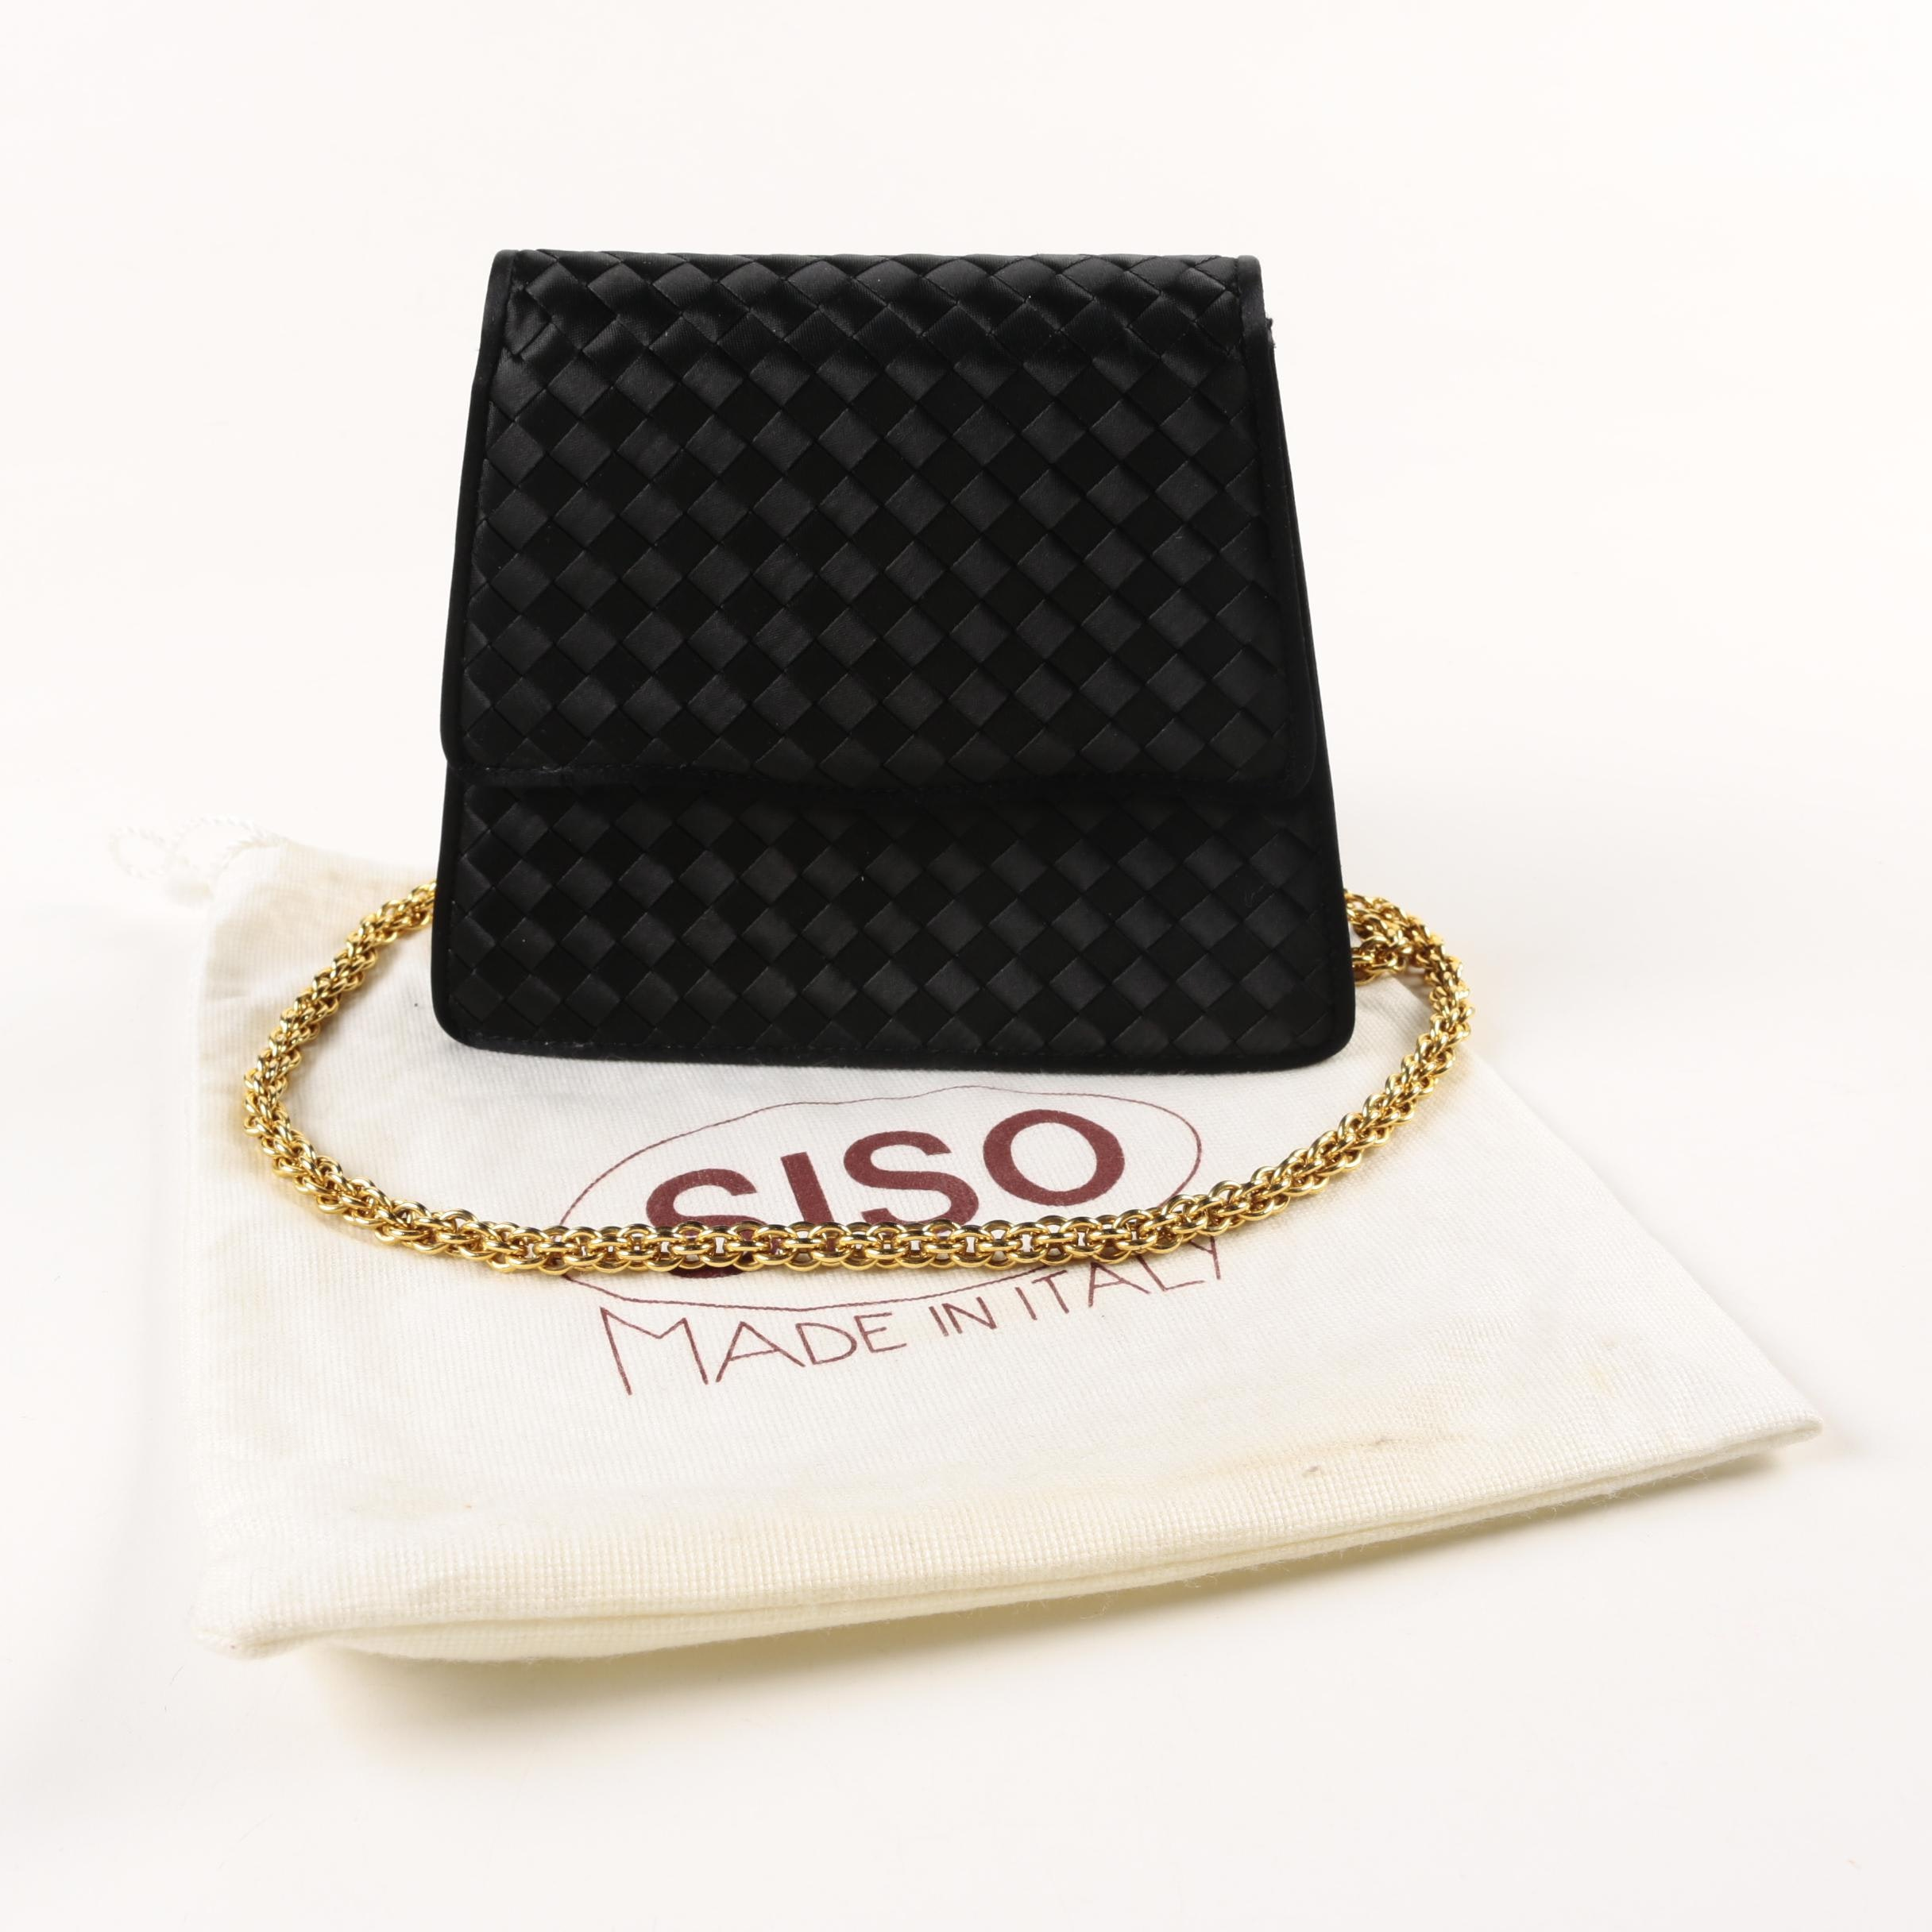 Siso Black Satin Evening Bag with Gold Tone Chain Strap